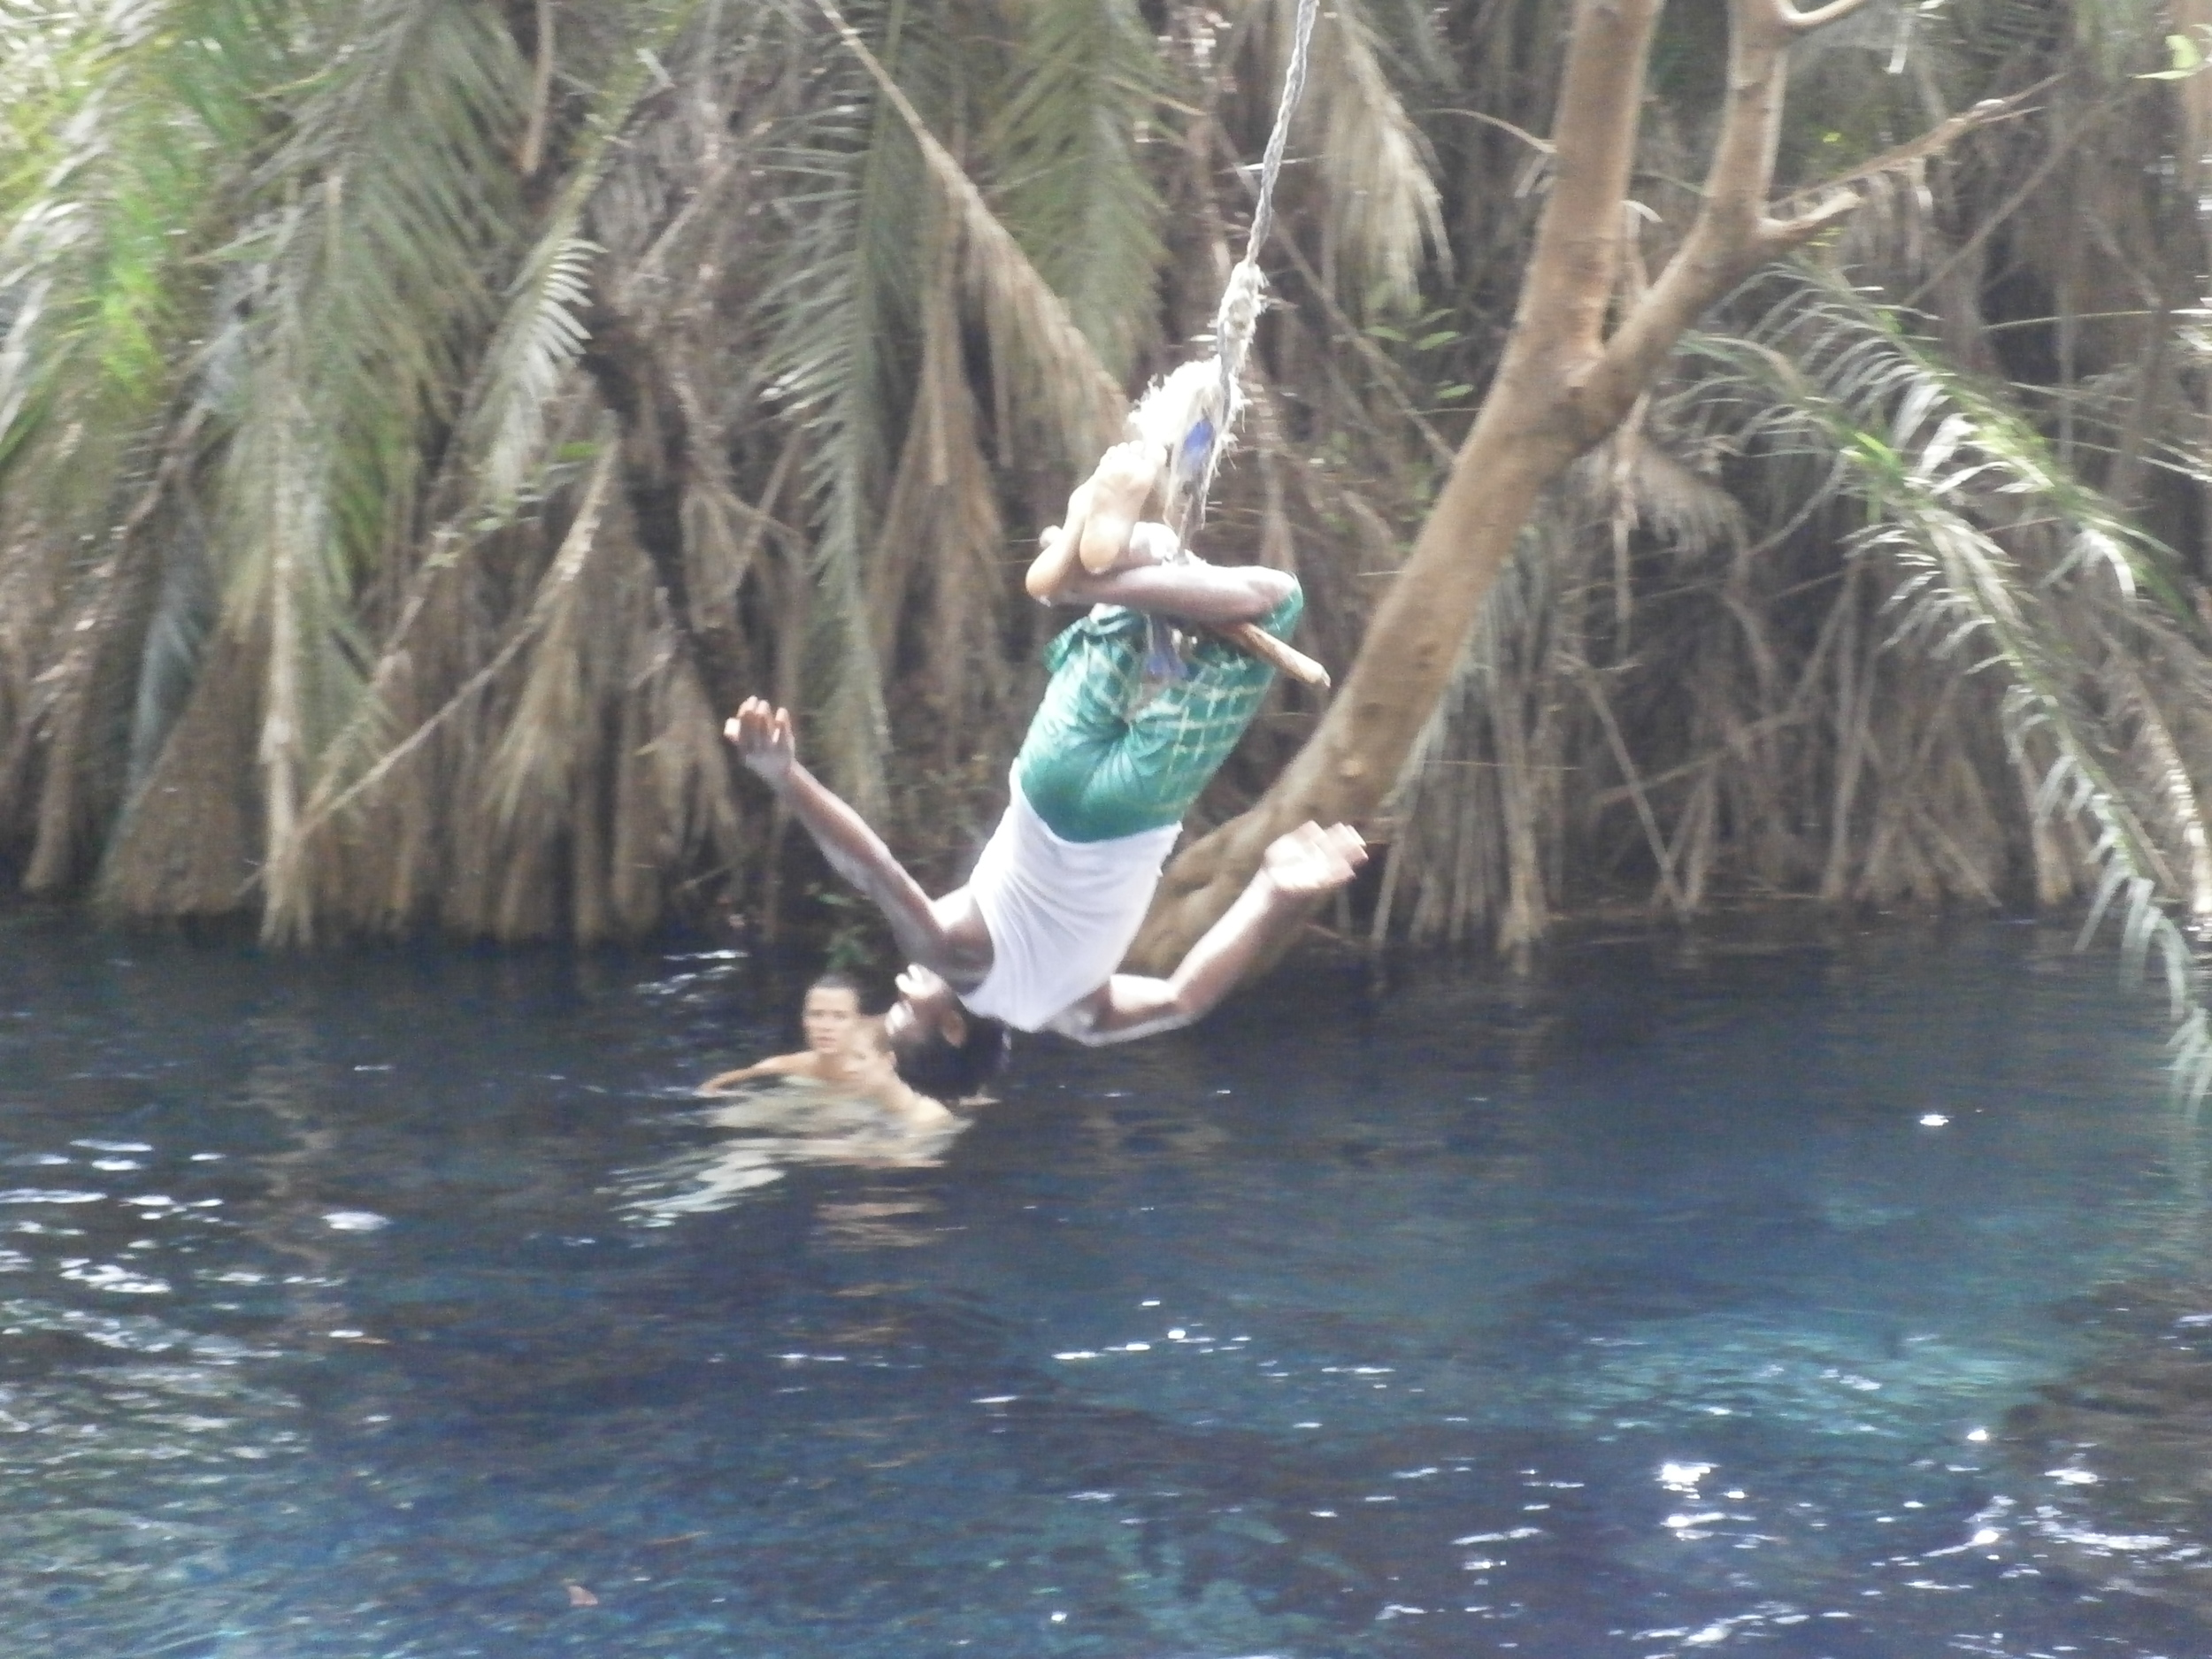 SAM OUR MANAGER OF THE BOYS HOME THRILLS THE GROUP WITH HIS AMAZING GYMNASTIC SKILLS BEFORE PLUNGING INTO THE WATER.